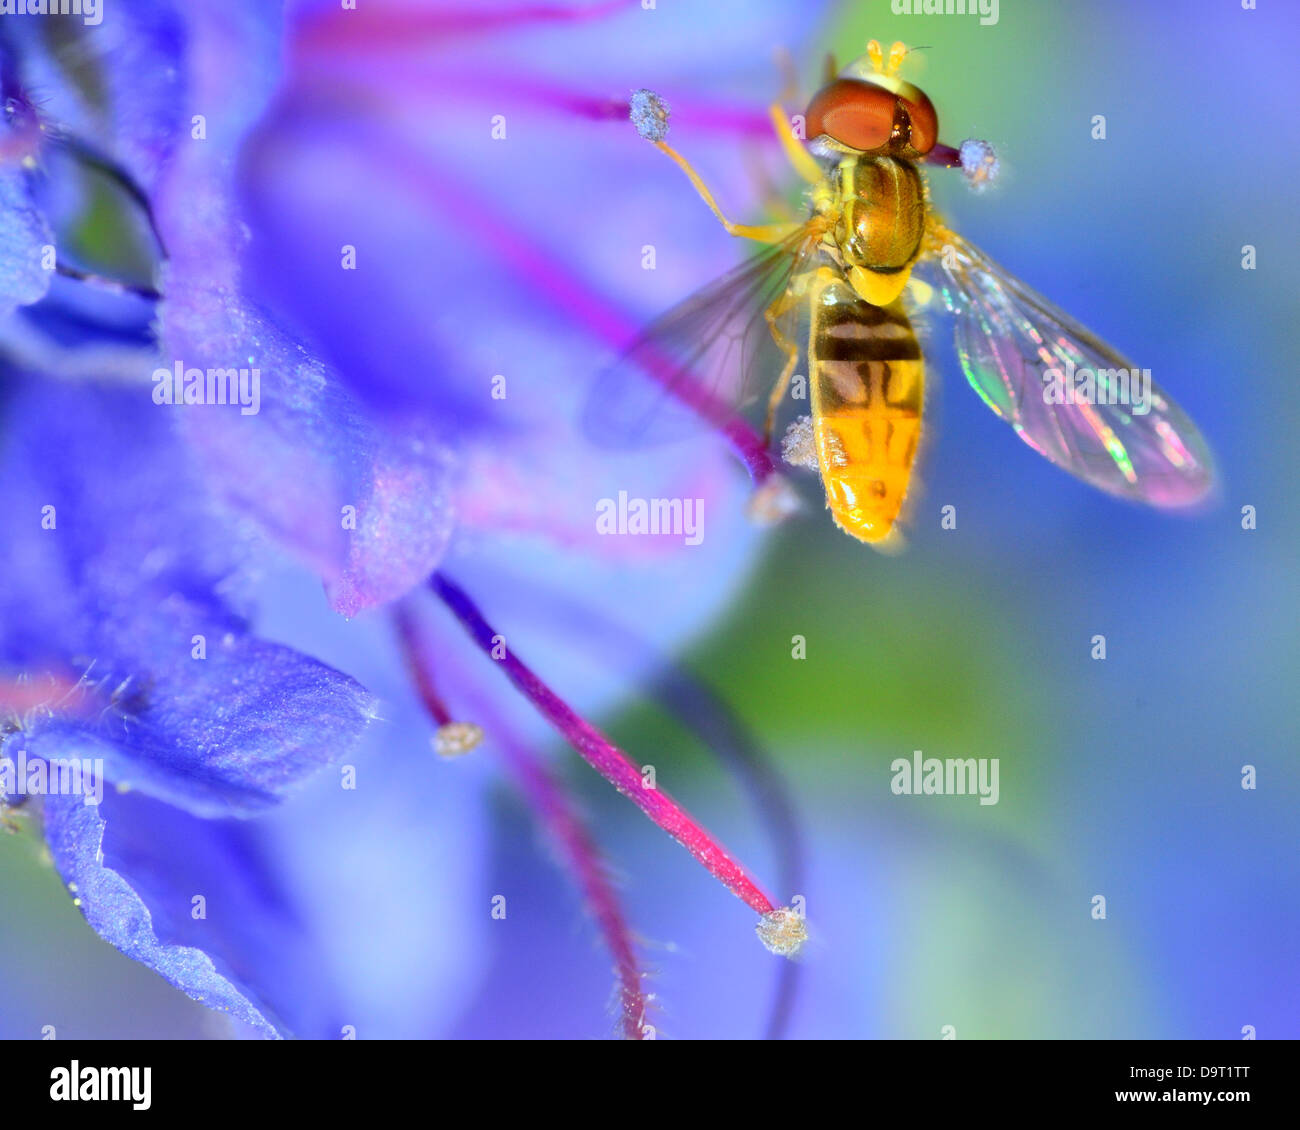 Hoverfly perched on a flower collecting pollen. Stock Foto